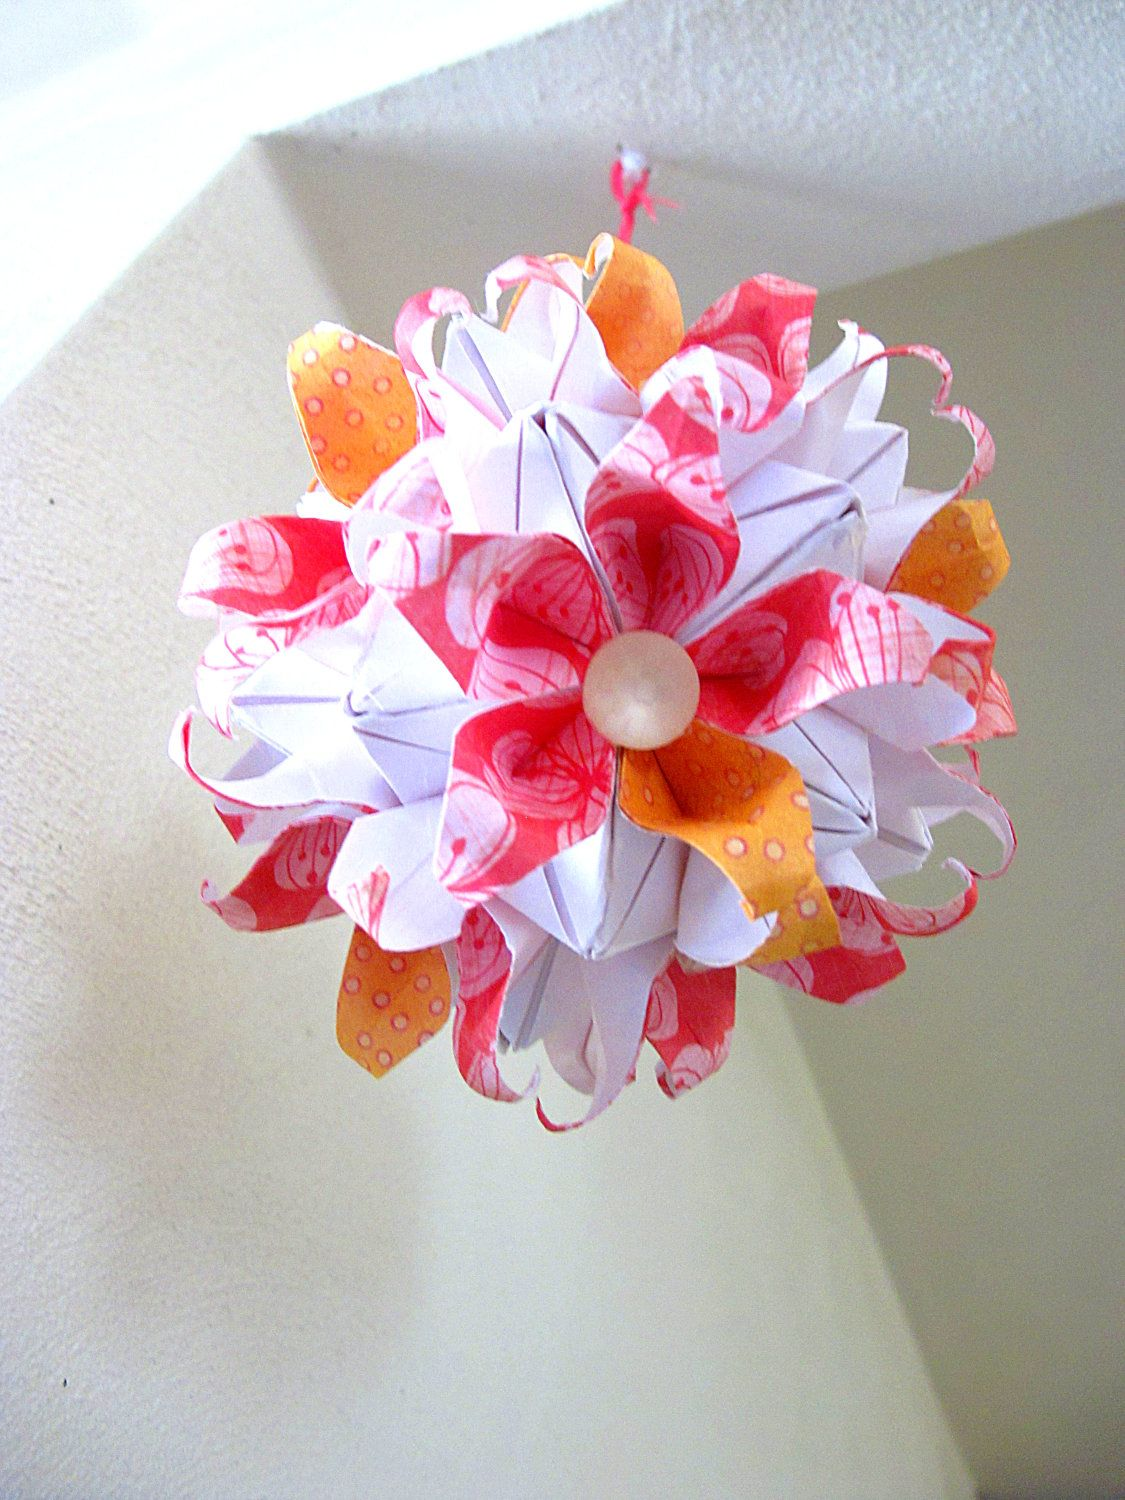 Kissing ball paper flower pomander pink orange and white kusudama kissing ball paper flower pomander pink orange and white kusudama flower hanging ball decoration mightylinksfo Choice Image